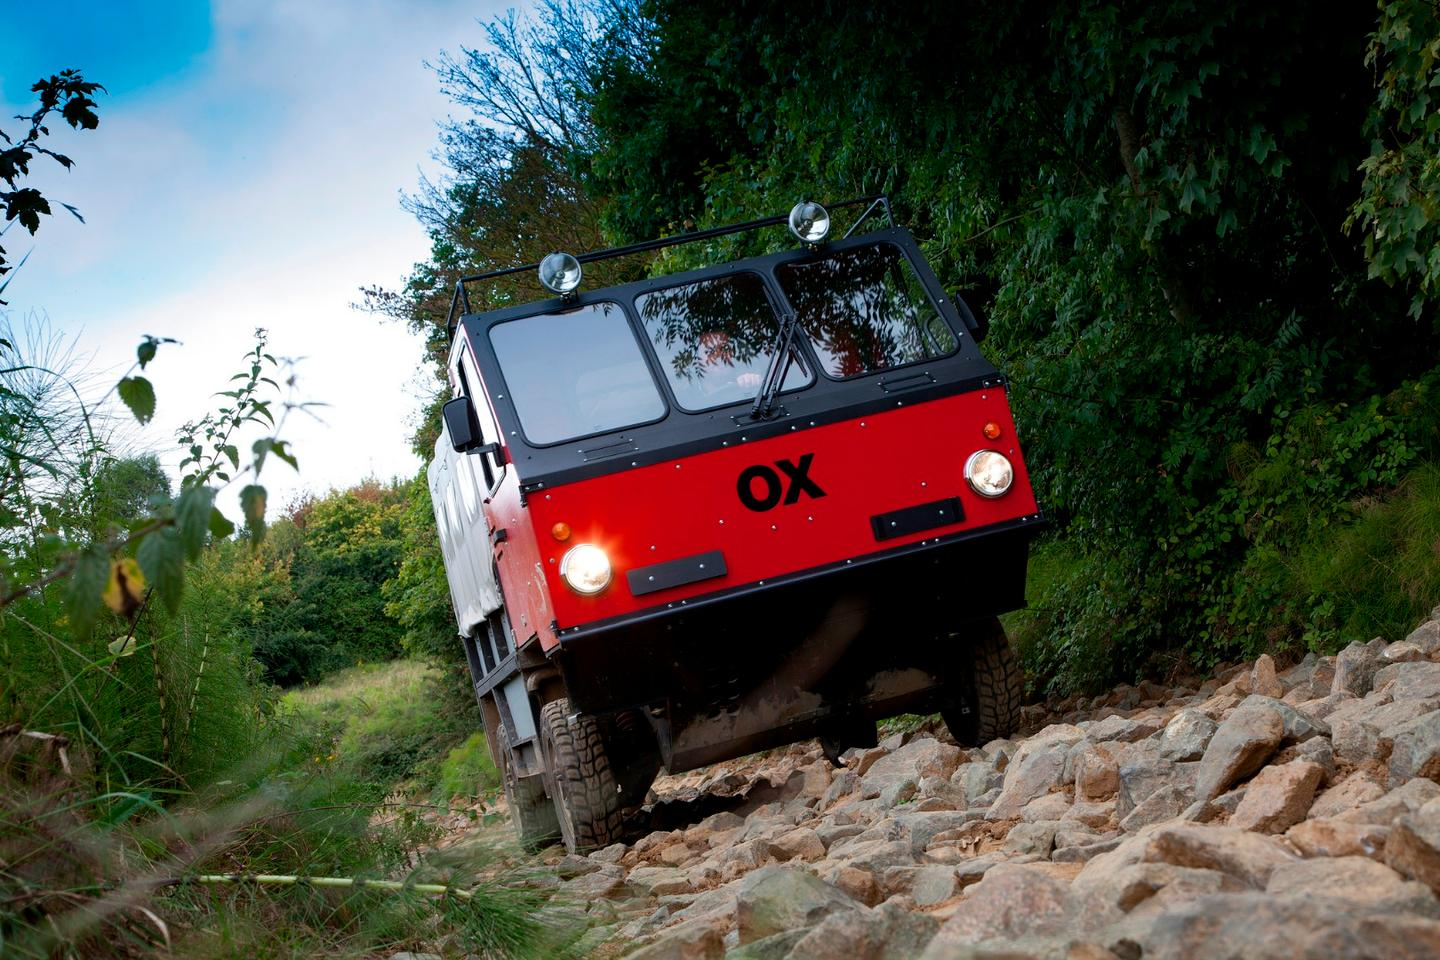 The Ox flatpacktruck is built to carry 1,900 kg (4,200 lb) and seat up to 13 people